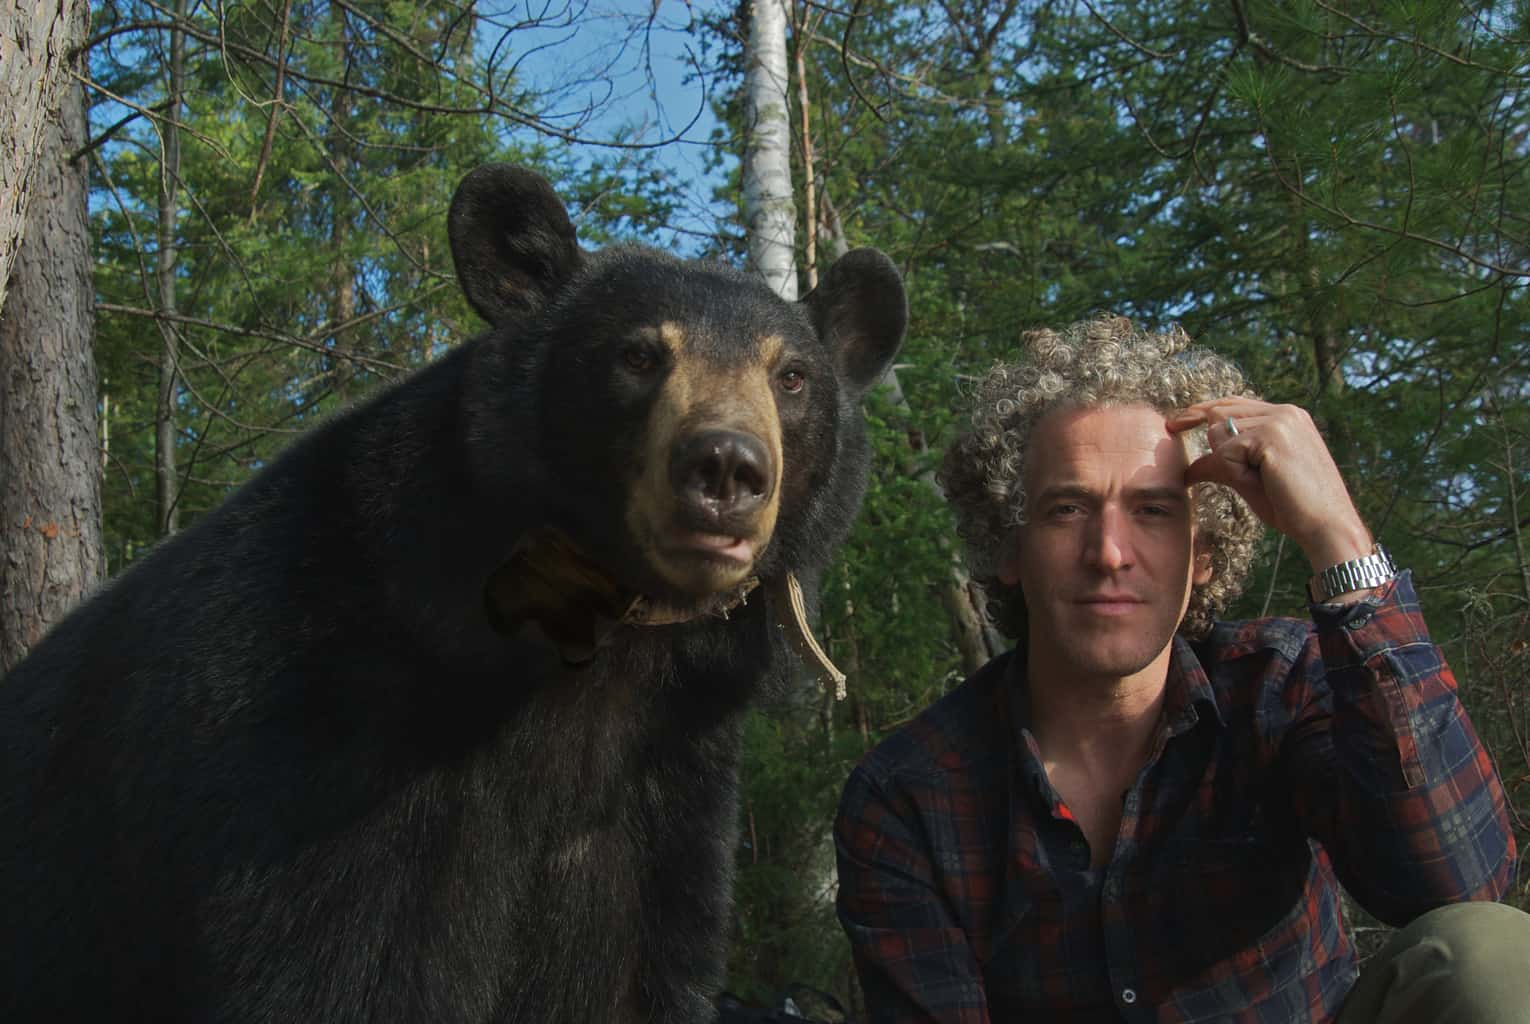 Gordon Buchanan sat alongside a Black Bear